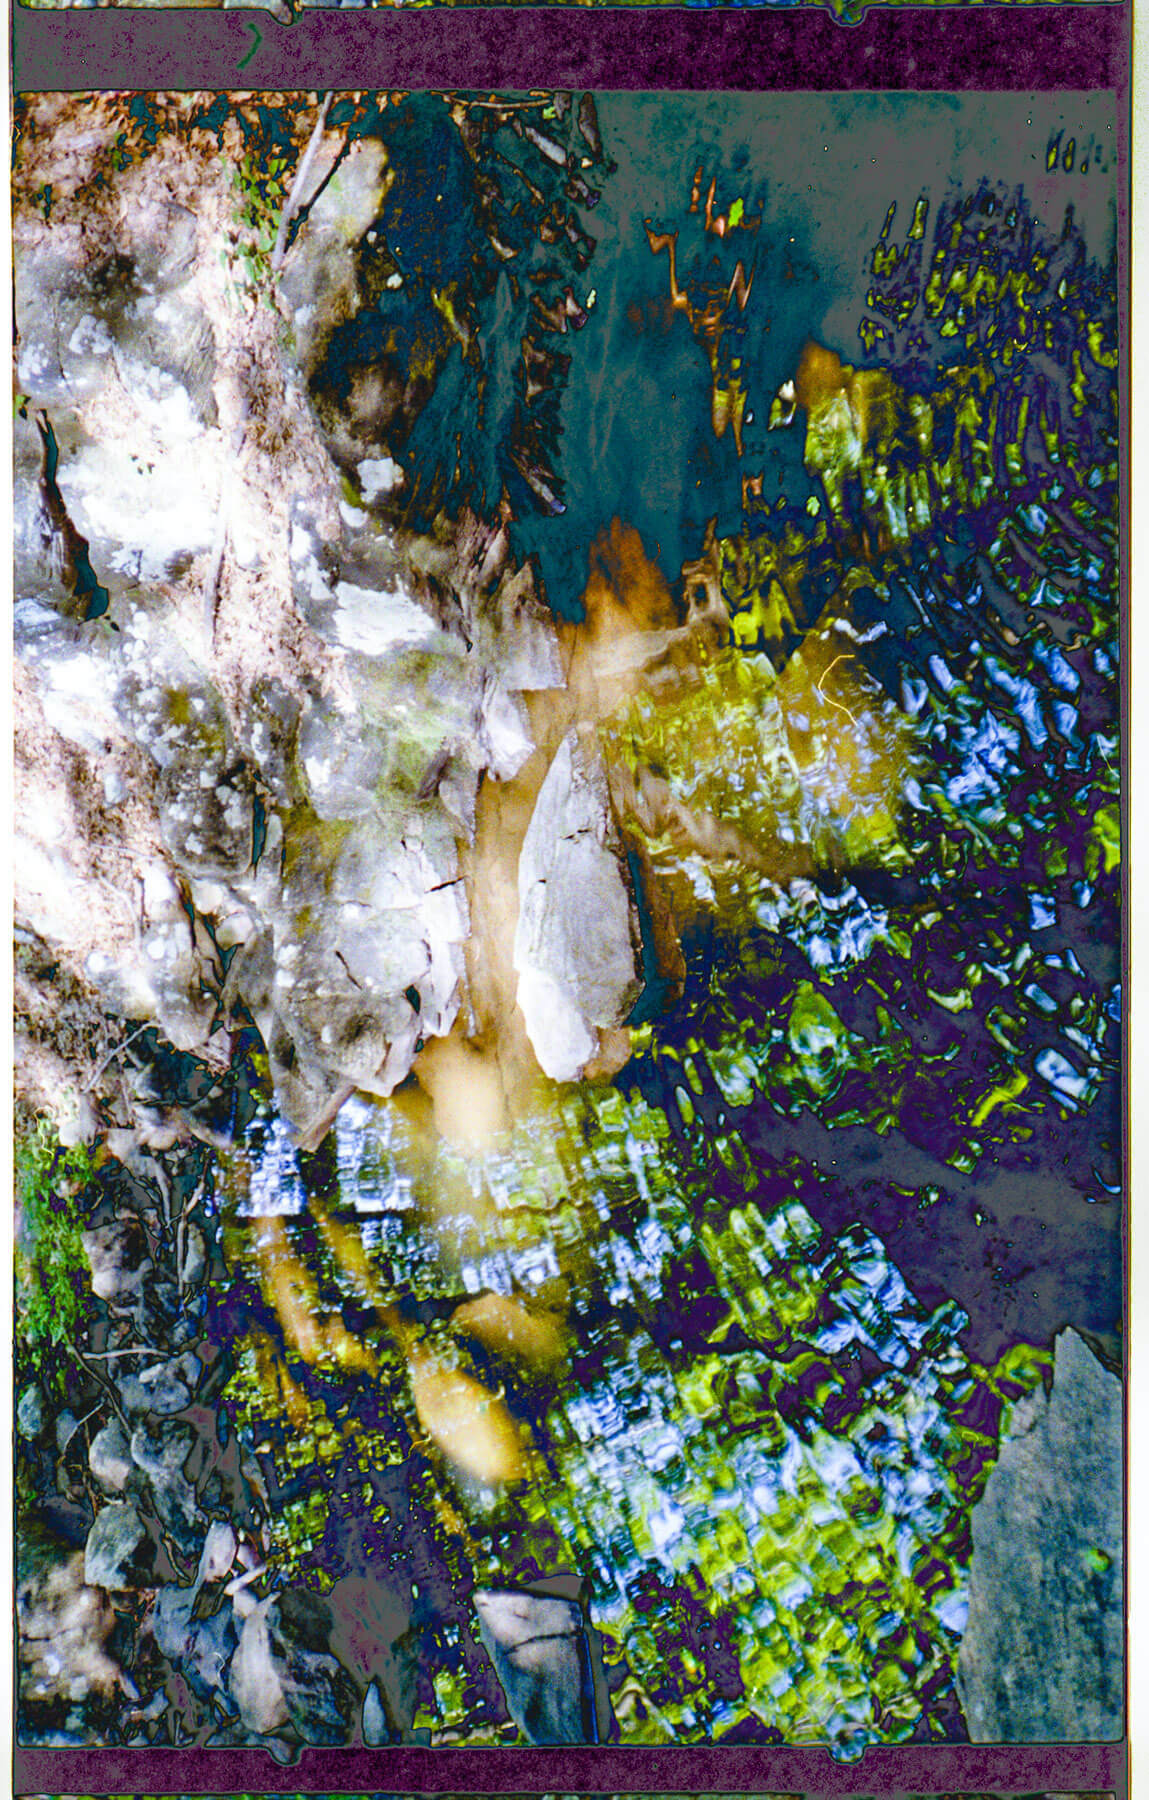 A photograph with layered exposures of rocks and water. The colors are vivid blues, greens, yellows, and white on a dark background.